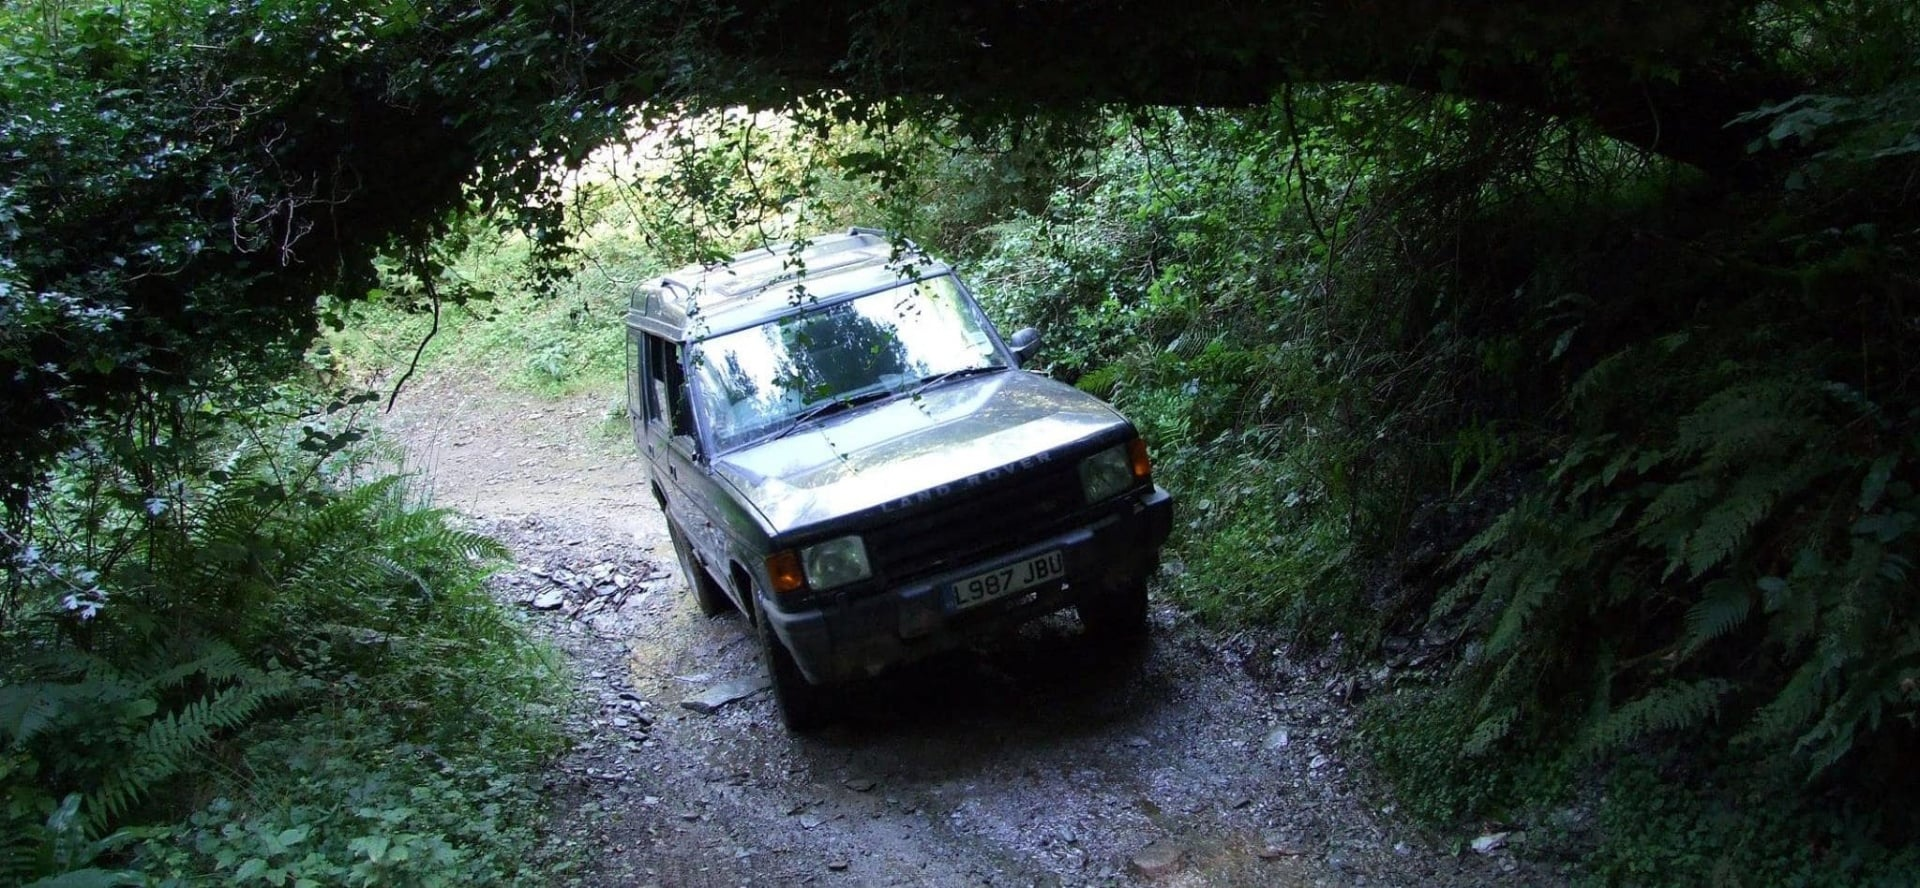 45 Minute 4x4 Driving Experience in Devon - With Passenger-5